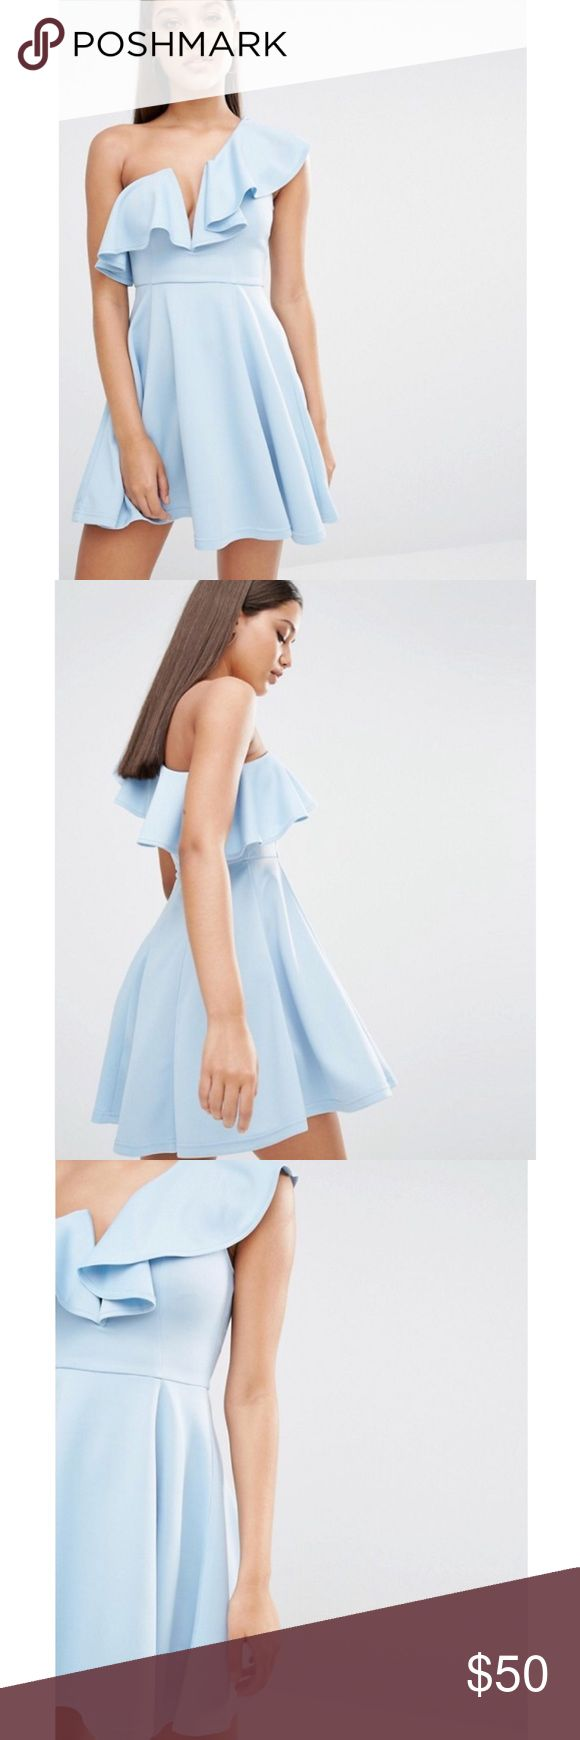 NWT Rare London Ruffle Skater Dress Rare London, this exact dress was sold at ASOS for $76. Size US 6. Color is darker than stock photos. ASOS Dresses